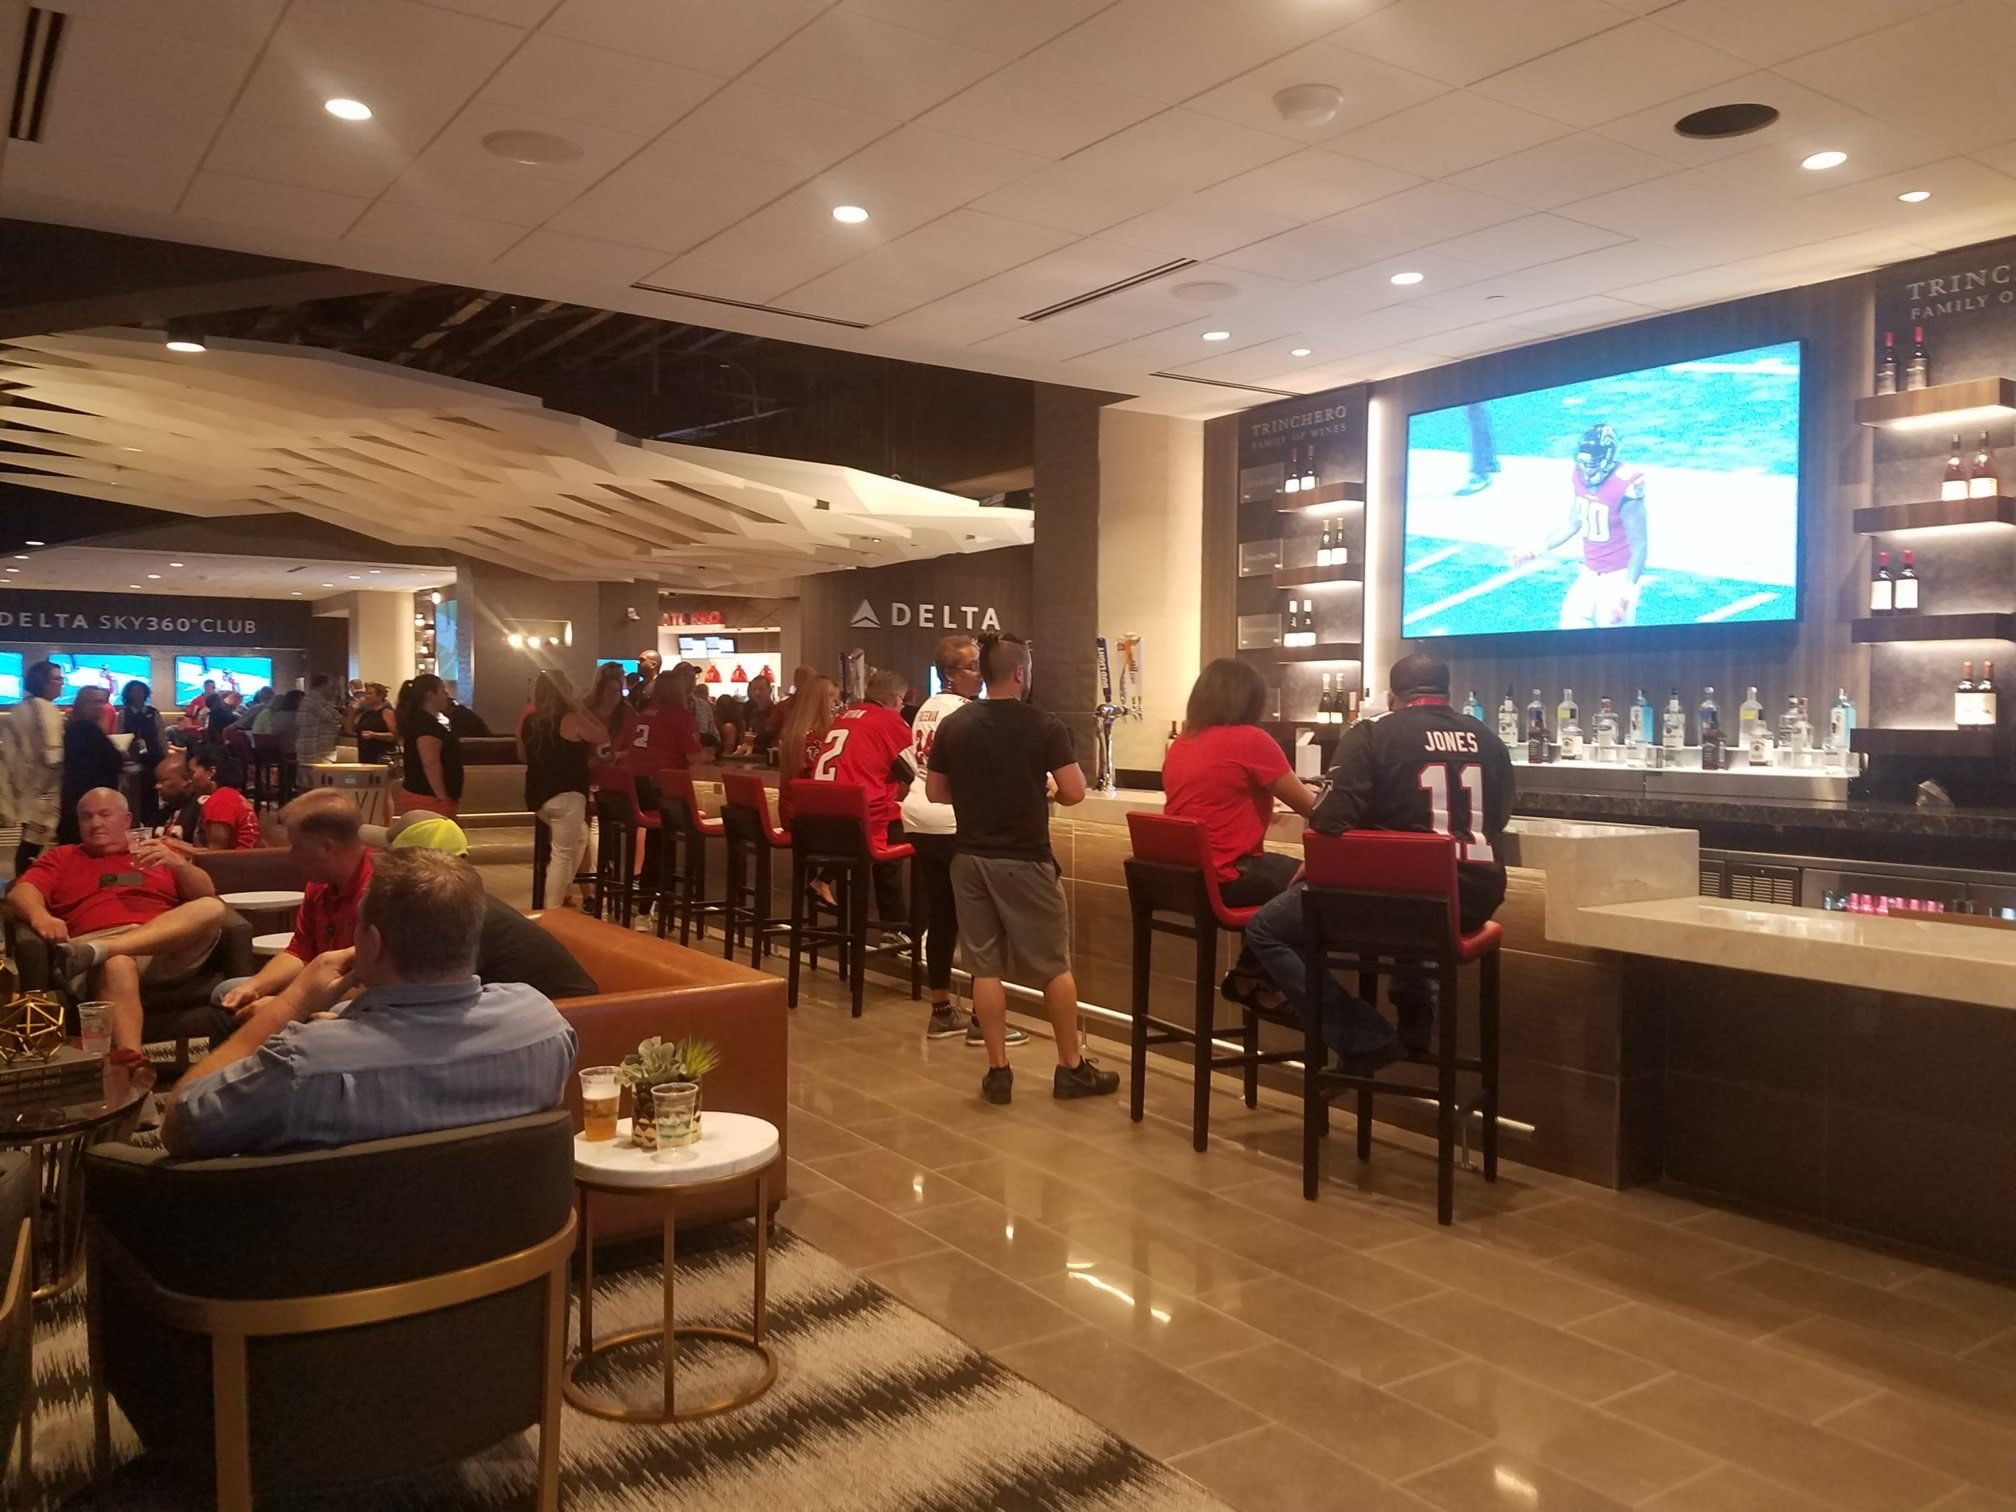 Fsu box seats for Mercedes benz superdome club level seating